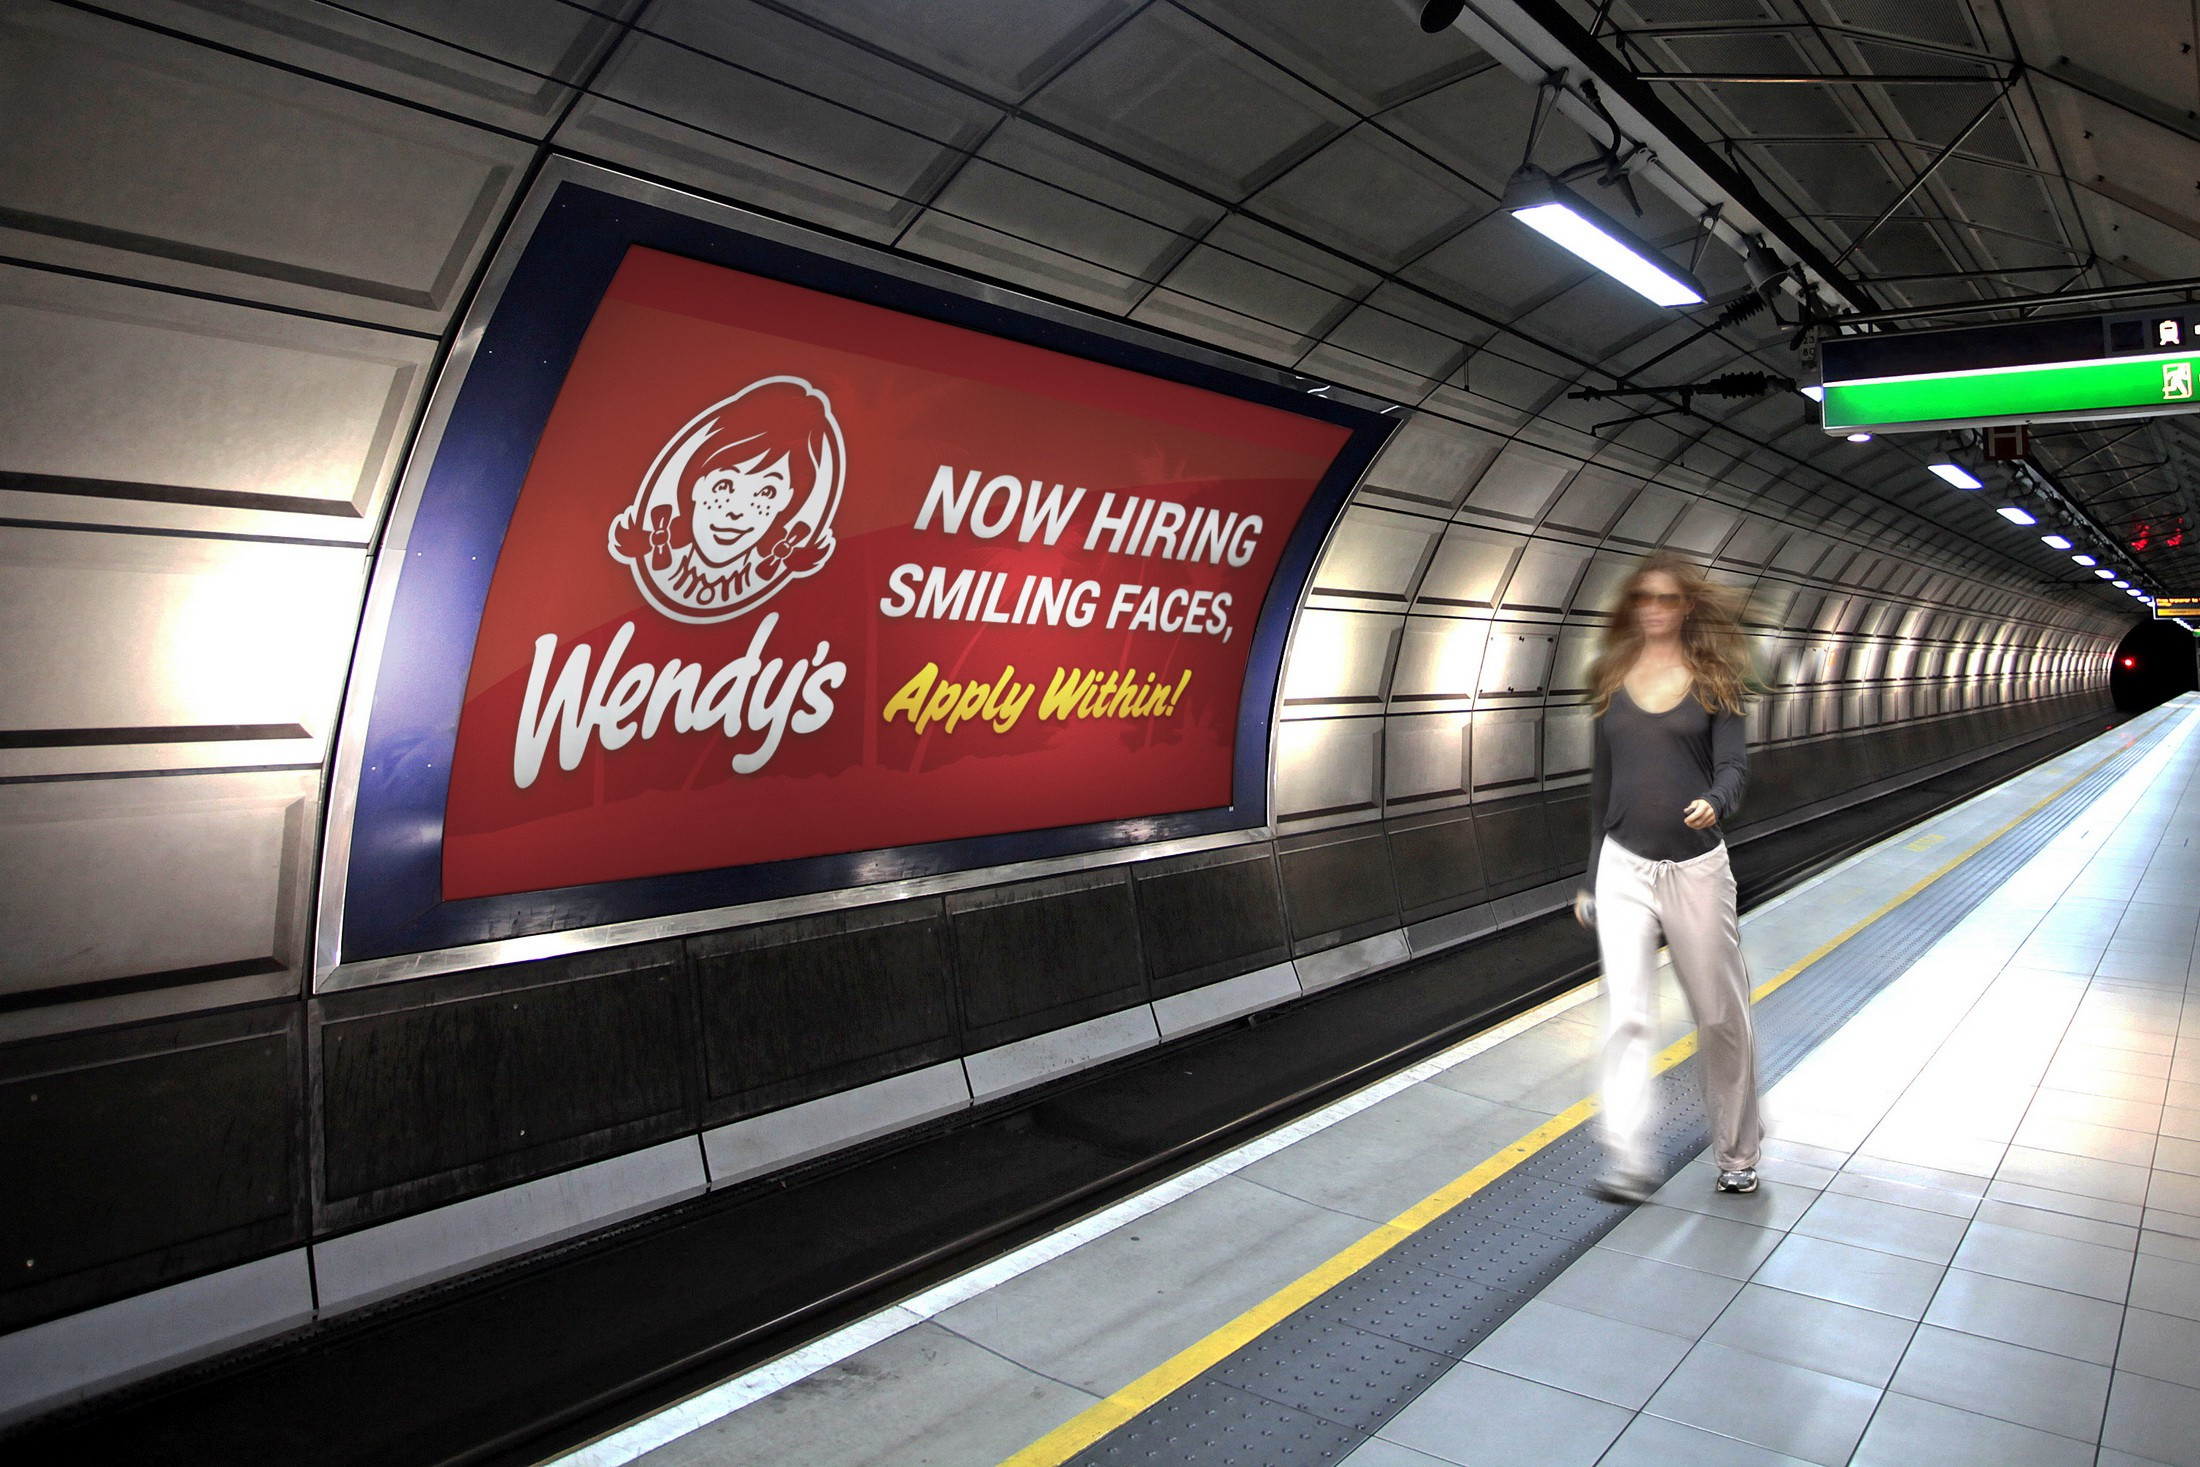 Make A Now Hiring Banner for Wendy's